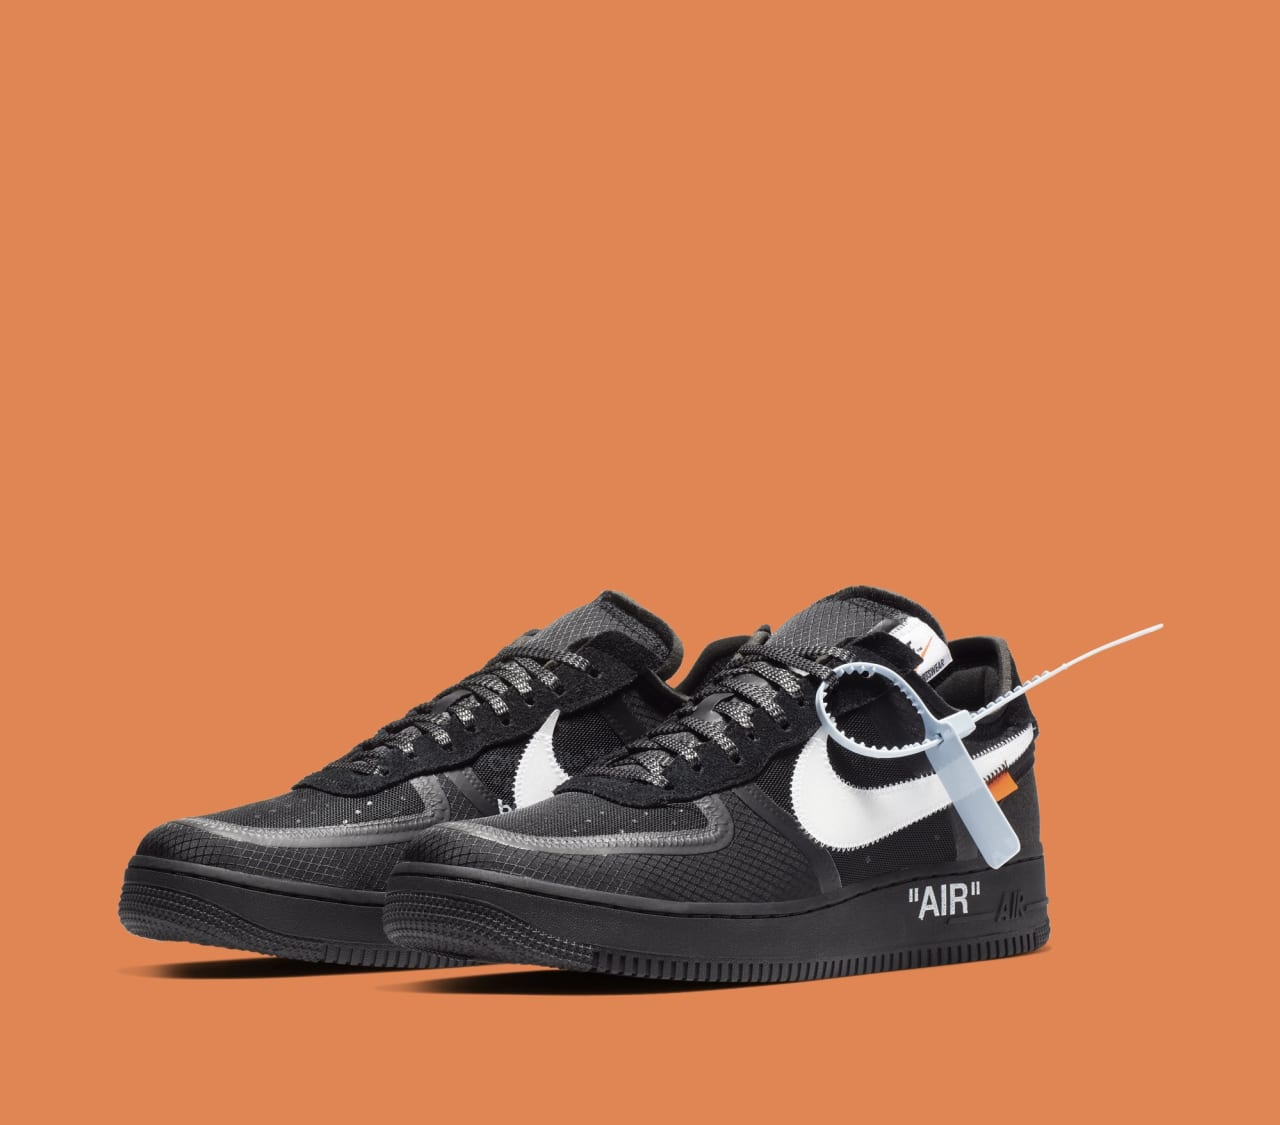 aaef5e7d23 Off-White x Nike Air Force 1 Low 'Black/White' AO4606-001 Release ...